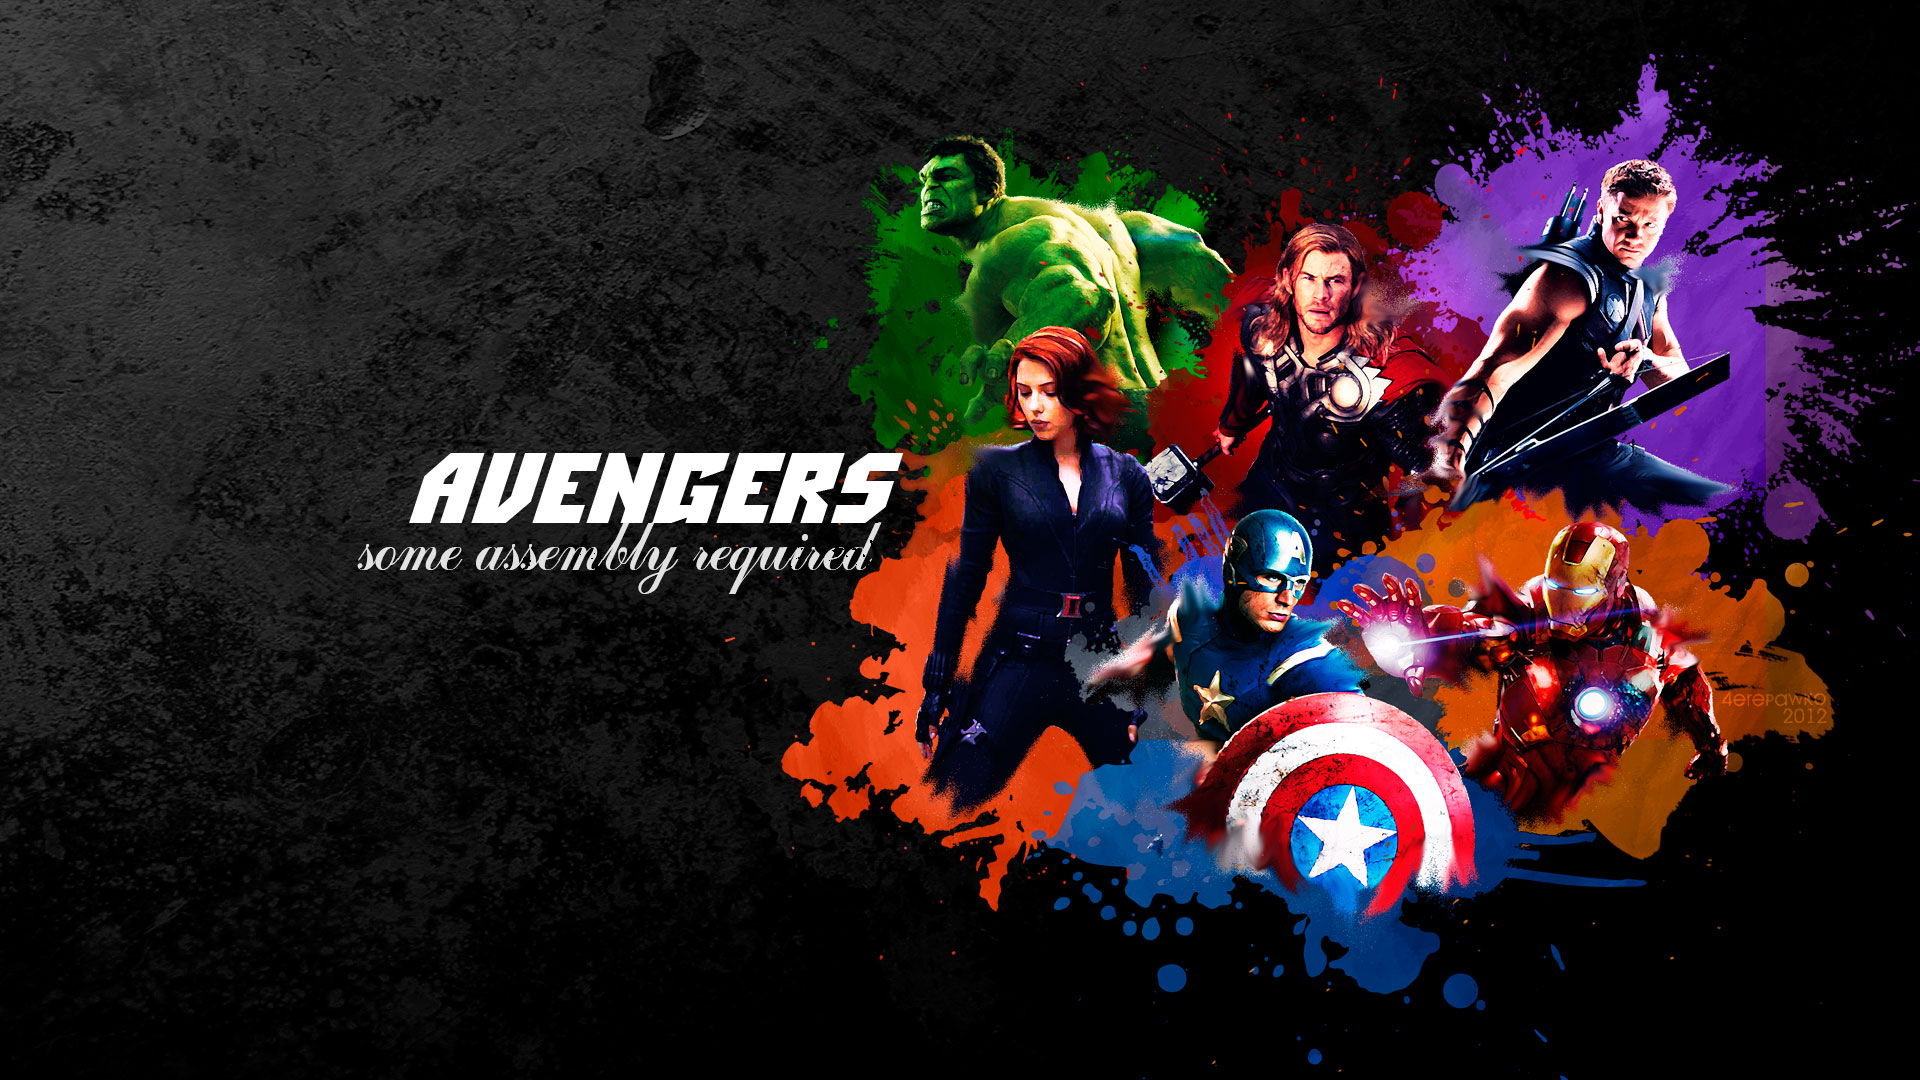 I Vendicatori Immagini The Avengers Hd Wallpaper And Background Foto